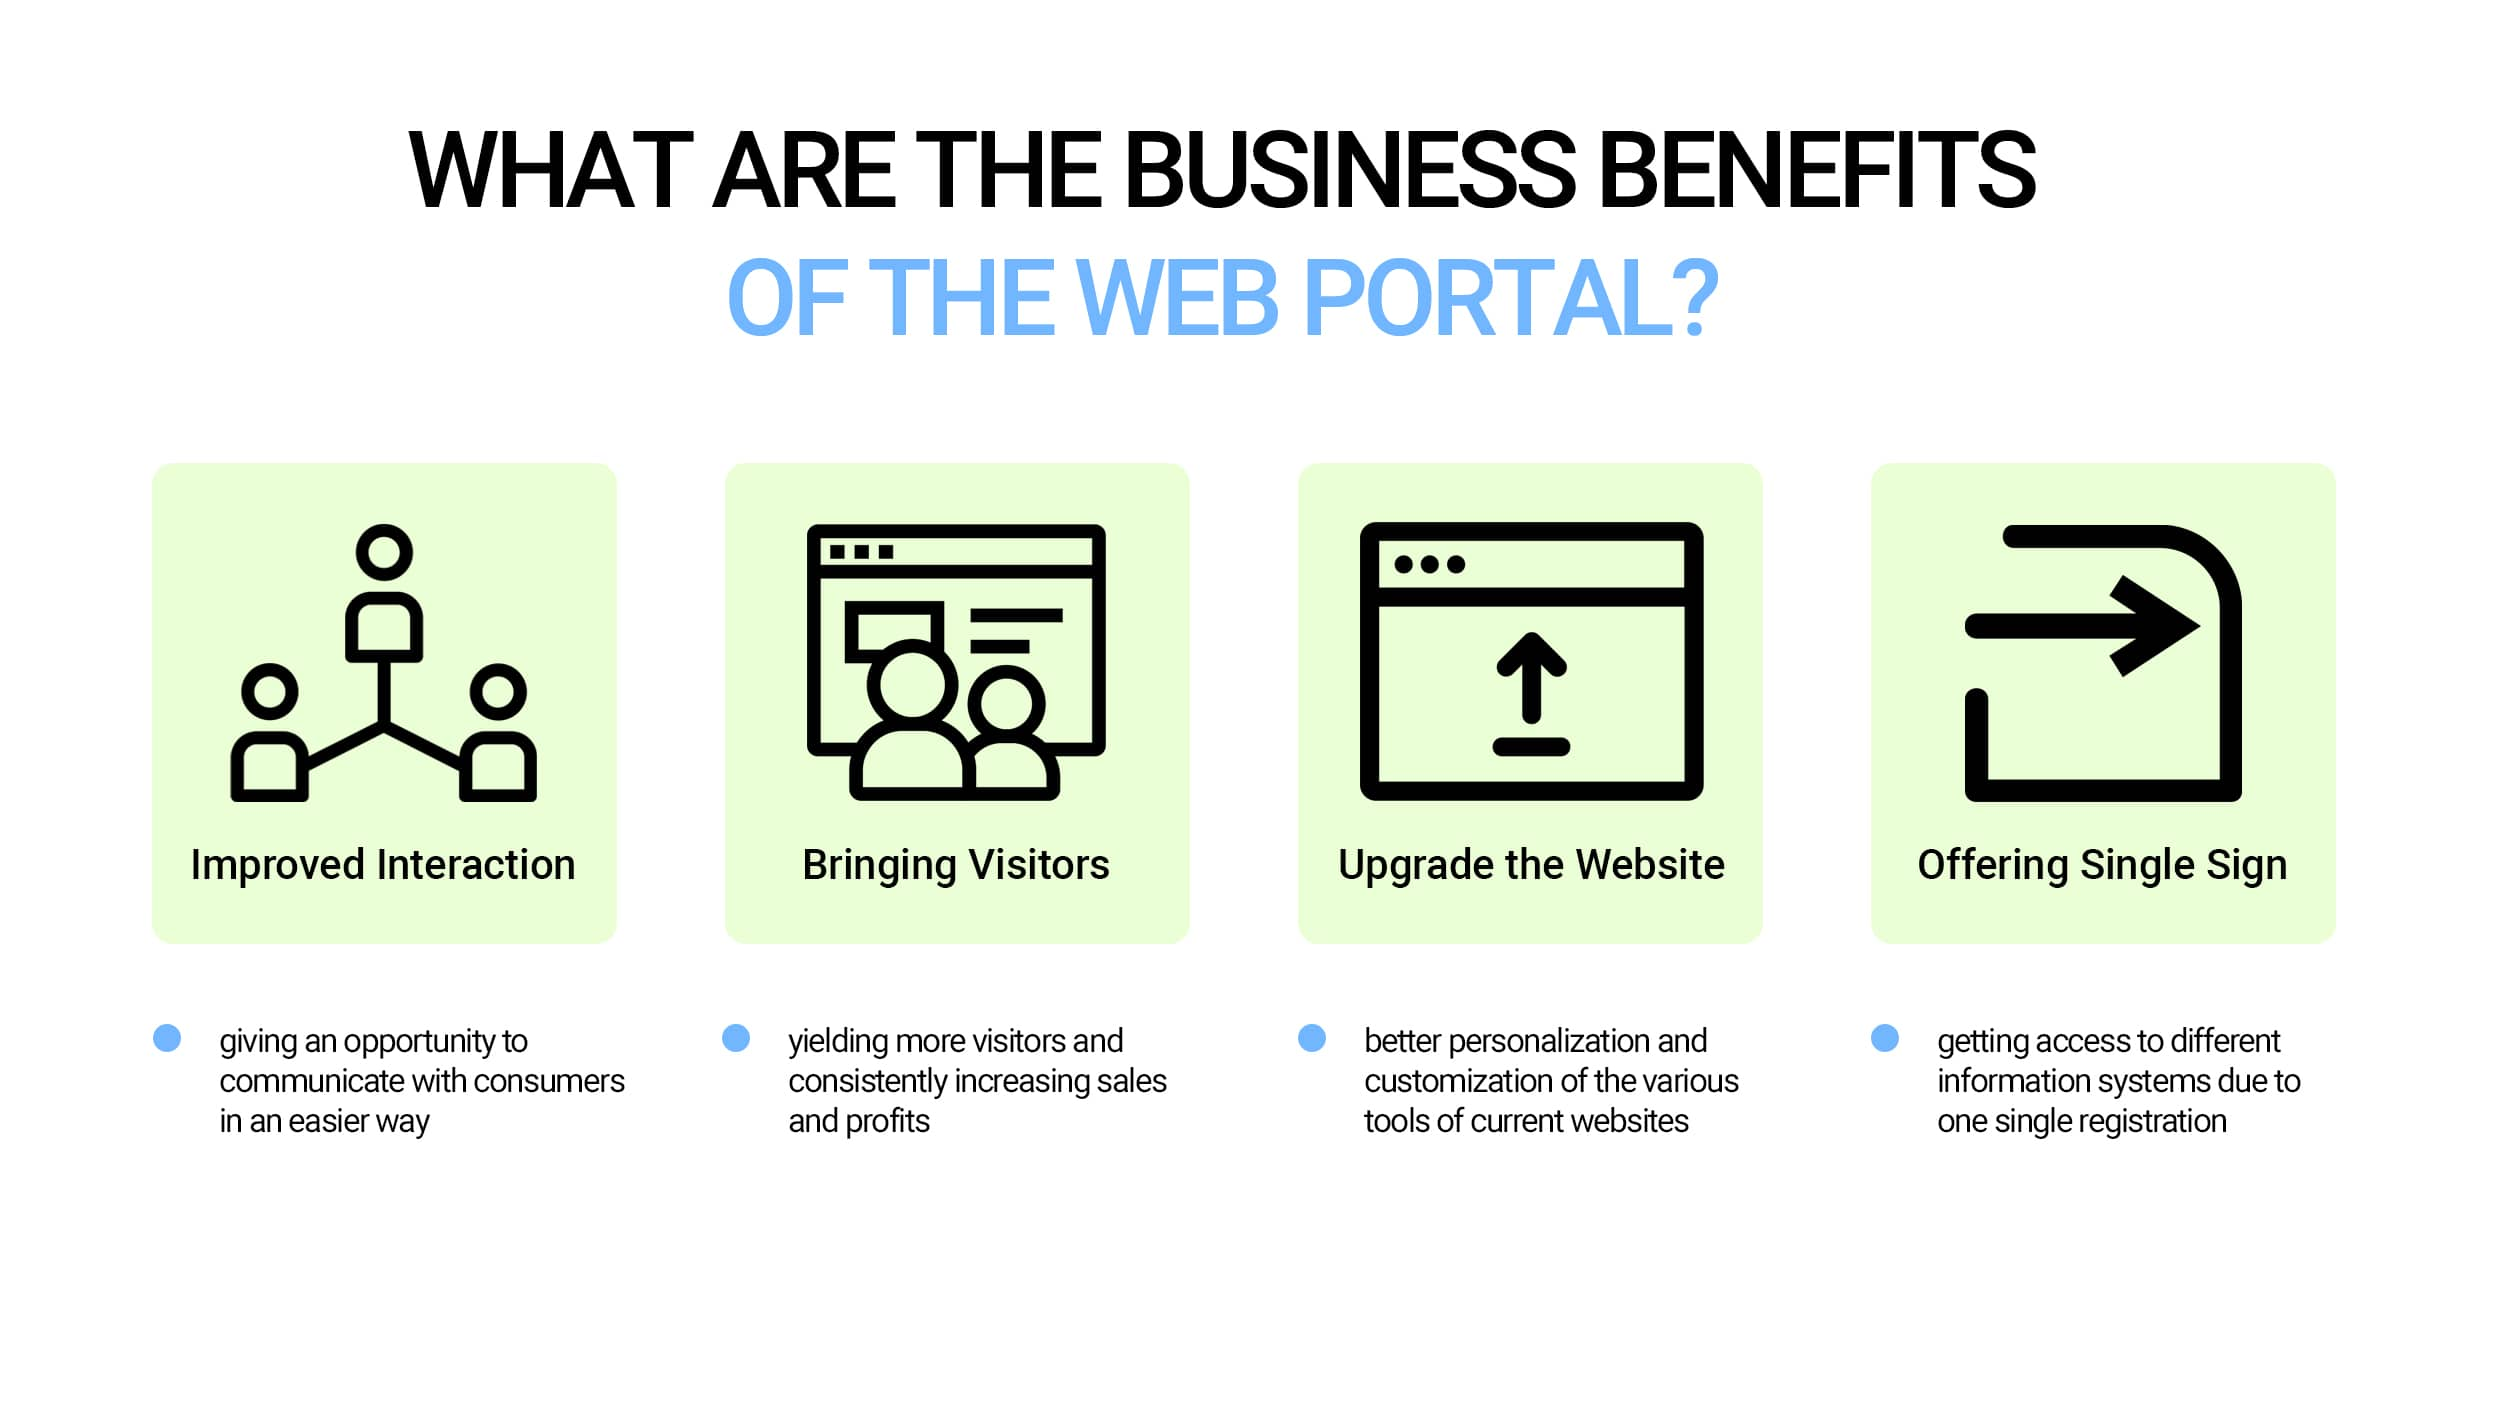 Business benefits of the Web portal